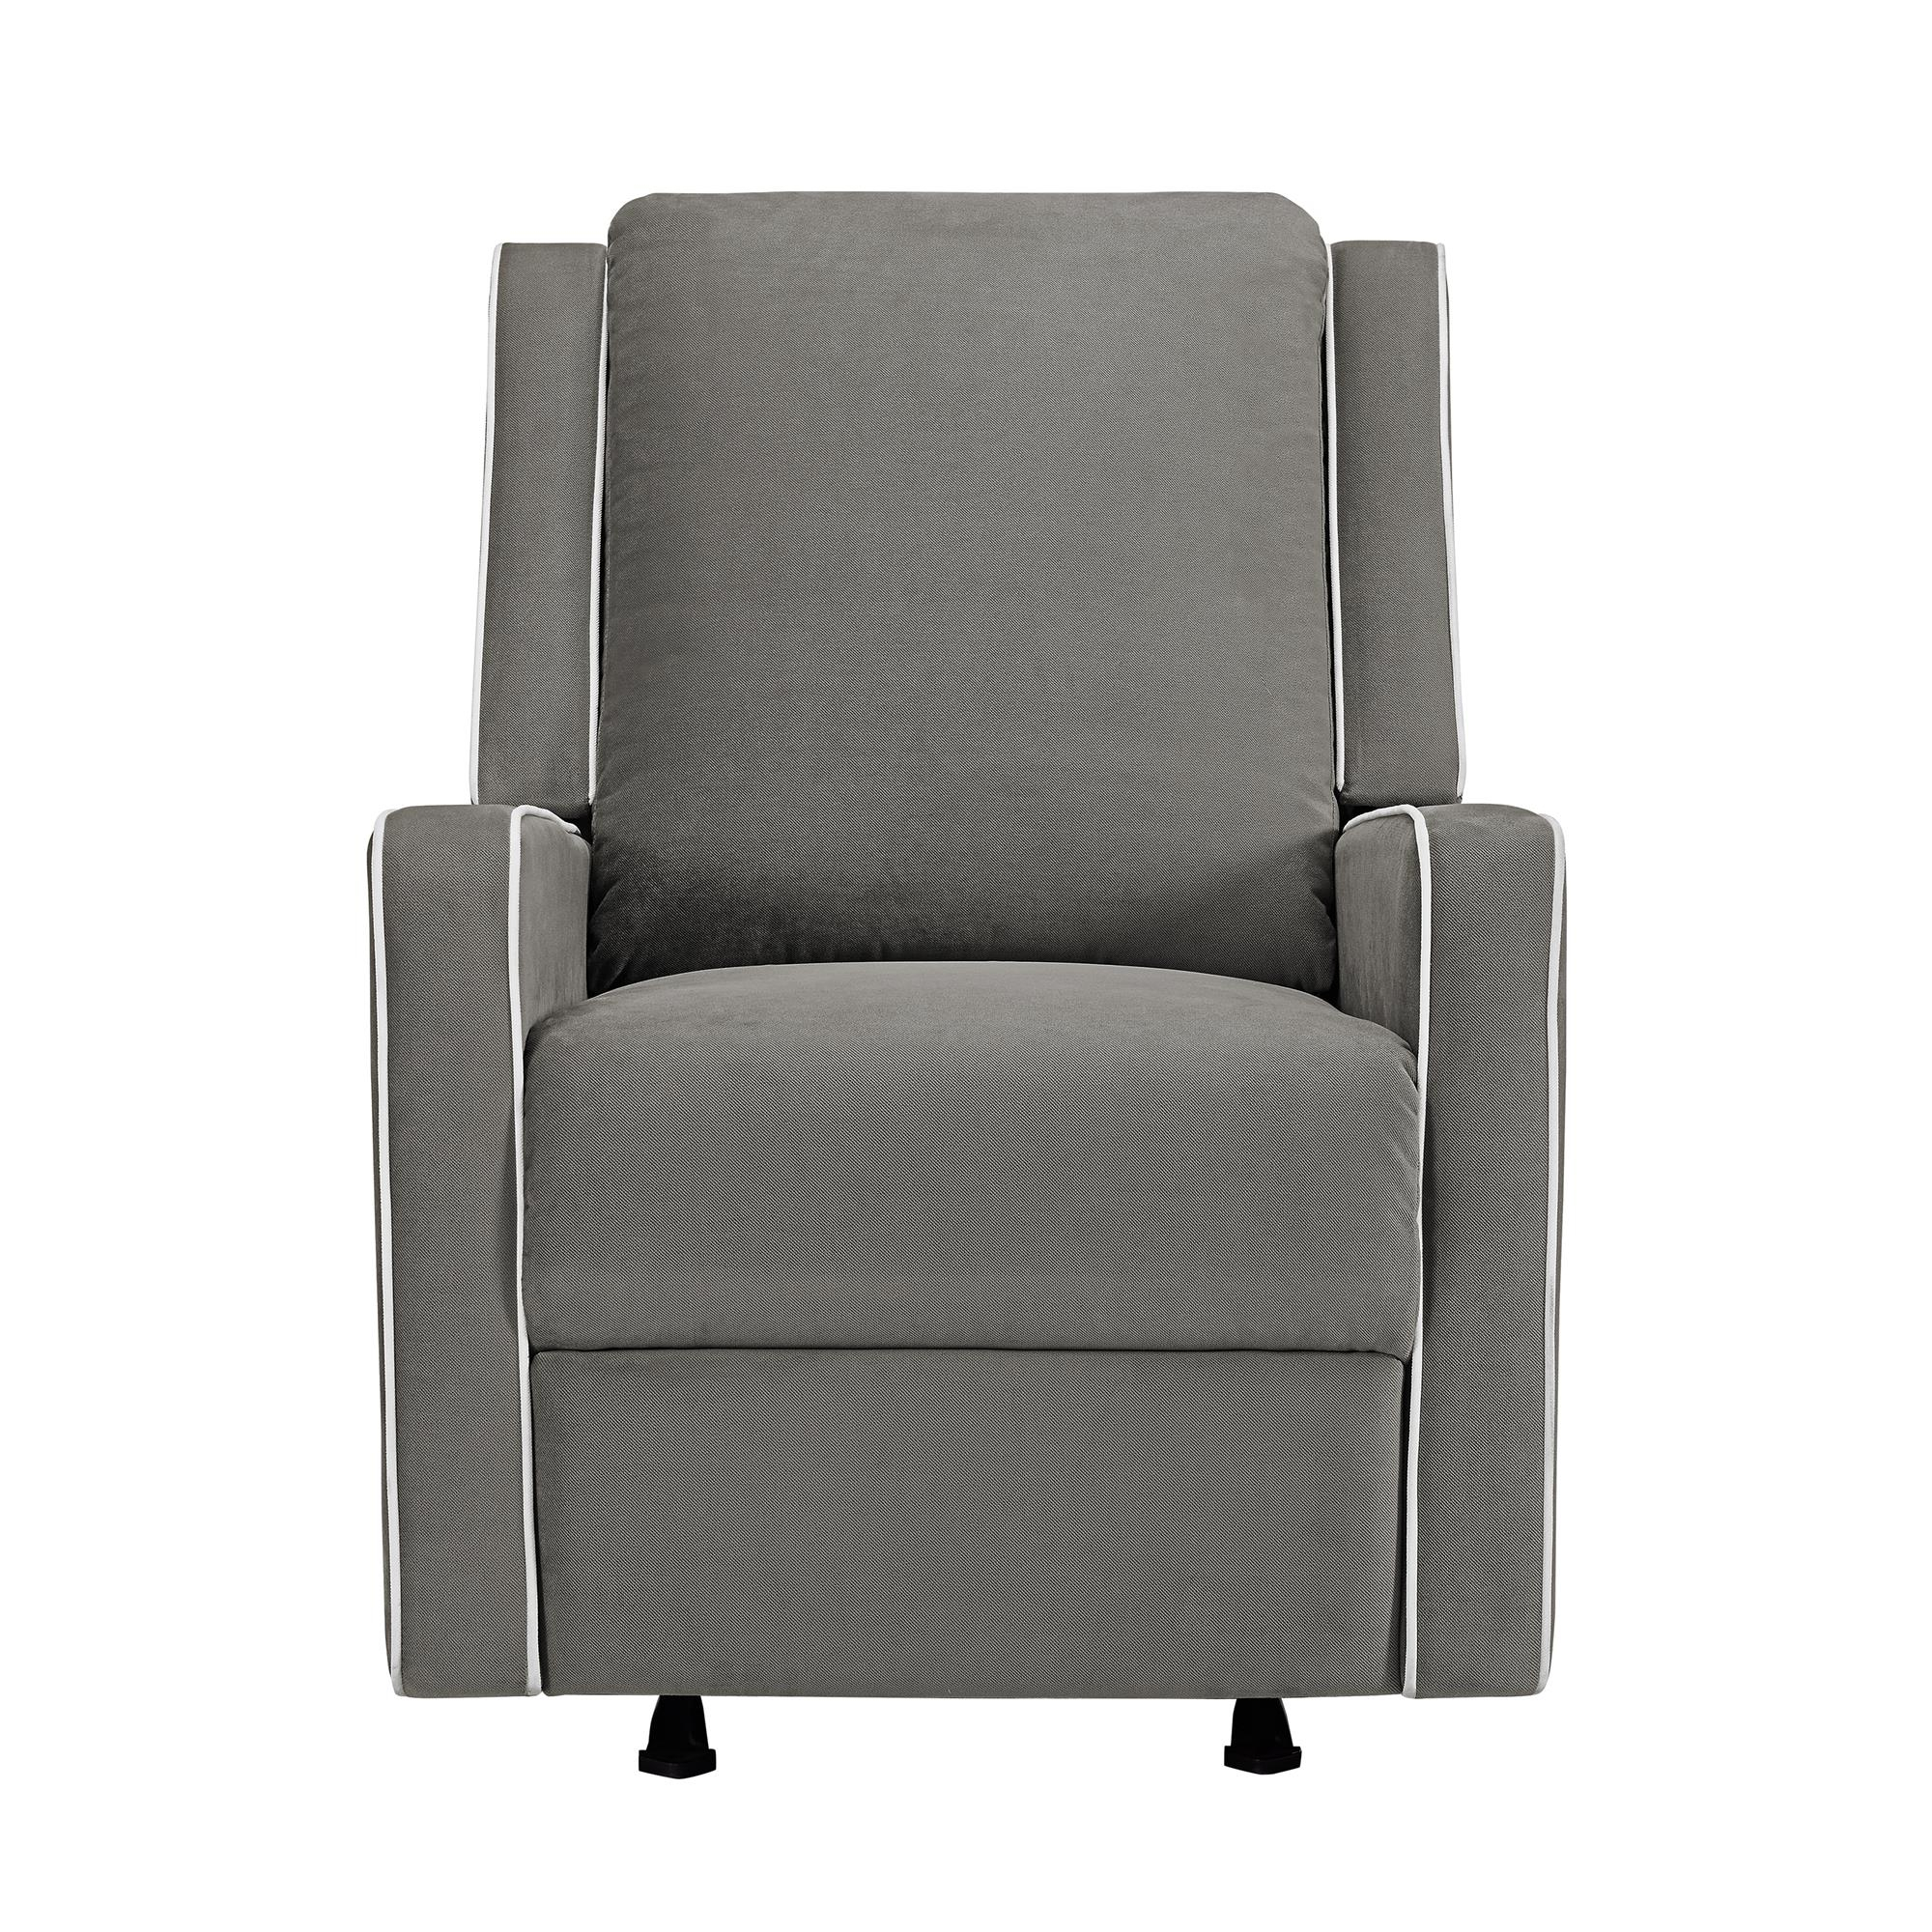 Baby Relax Robyn Rocking Recliner, Graphite Grey – Walmart For Abbey Swivel Glider Recliners (View 11 of 25)